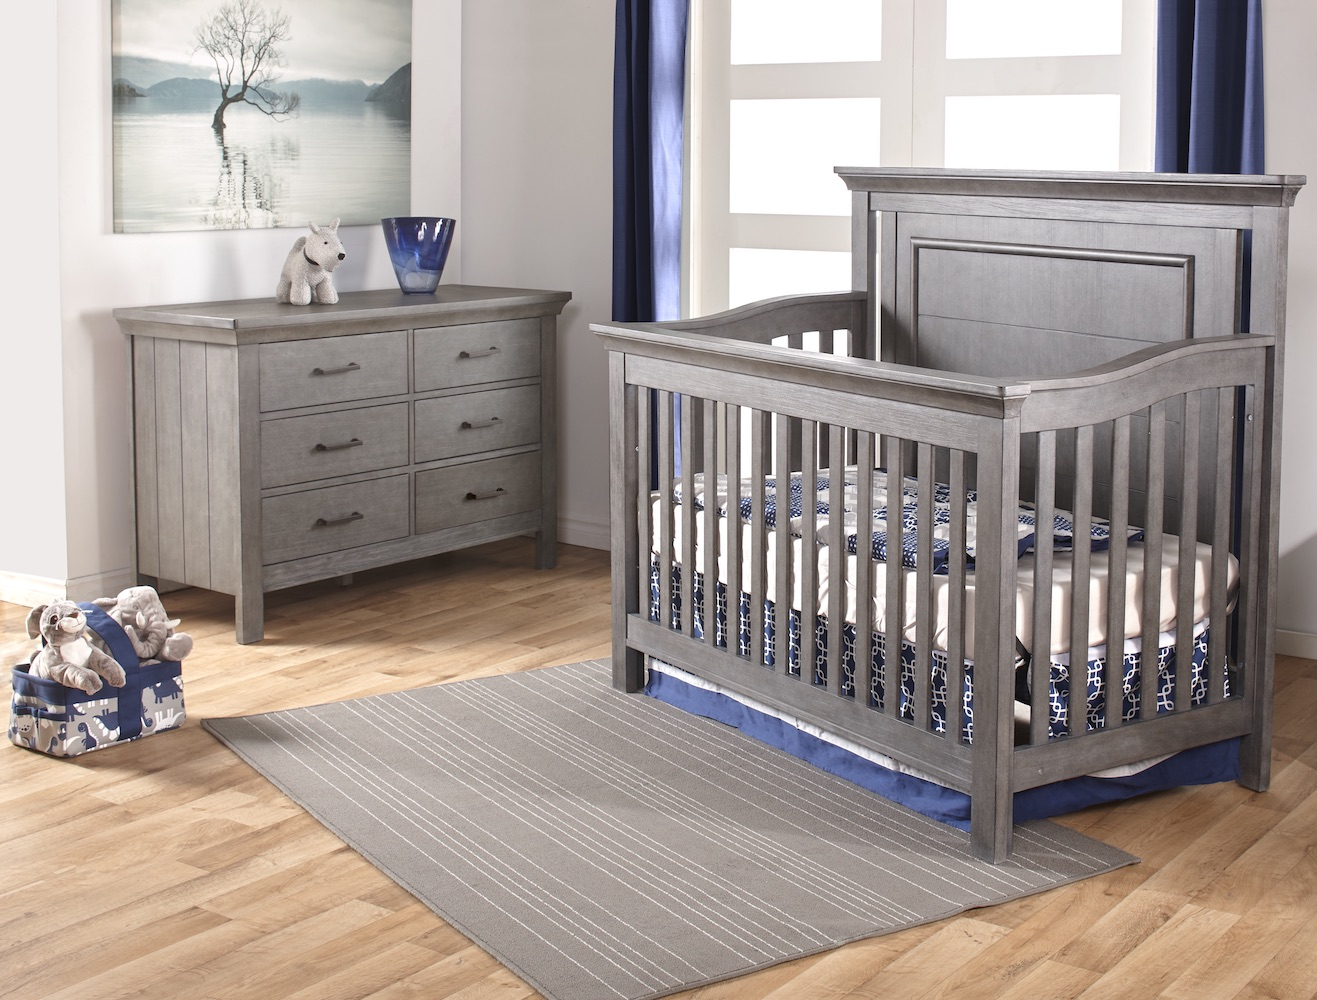 Pali Design Como Flat Top Forever Crib + Dresser in Granite